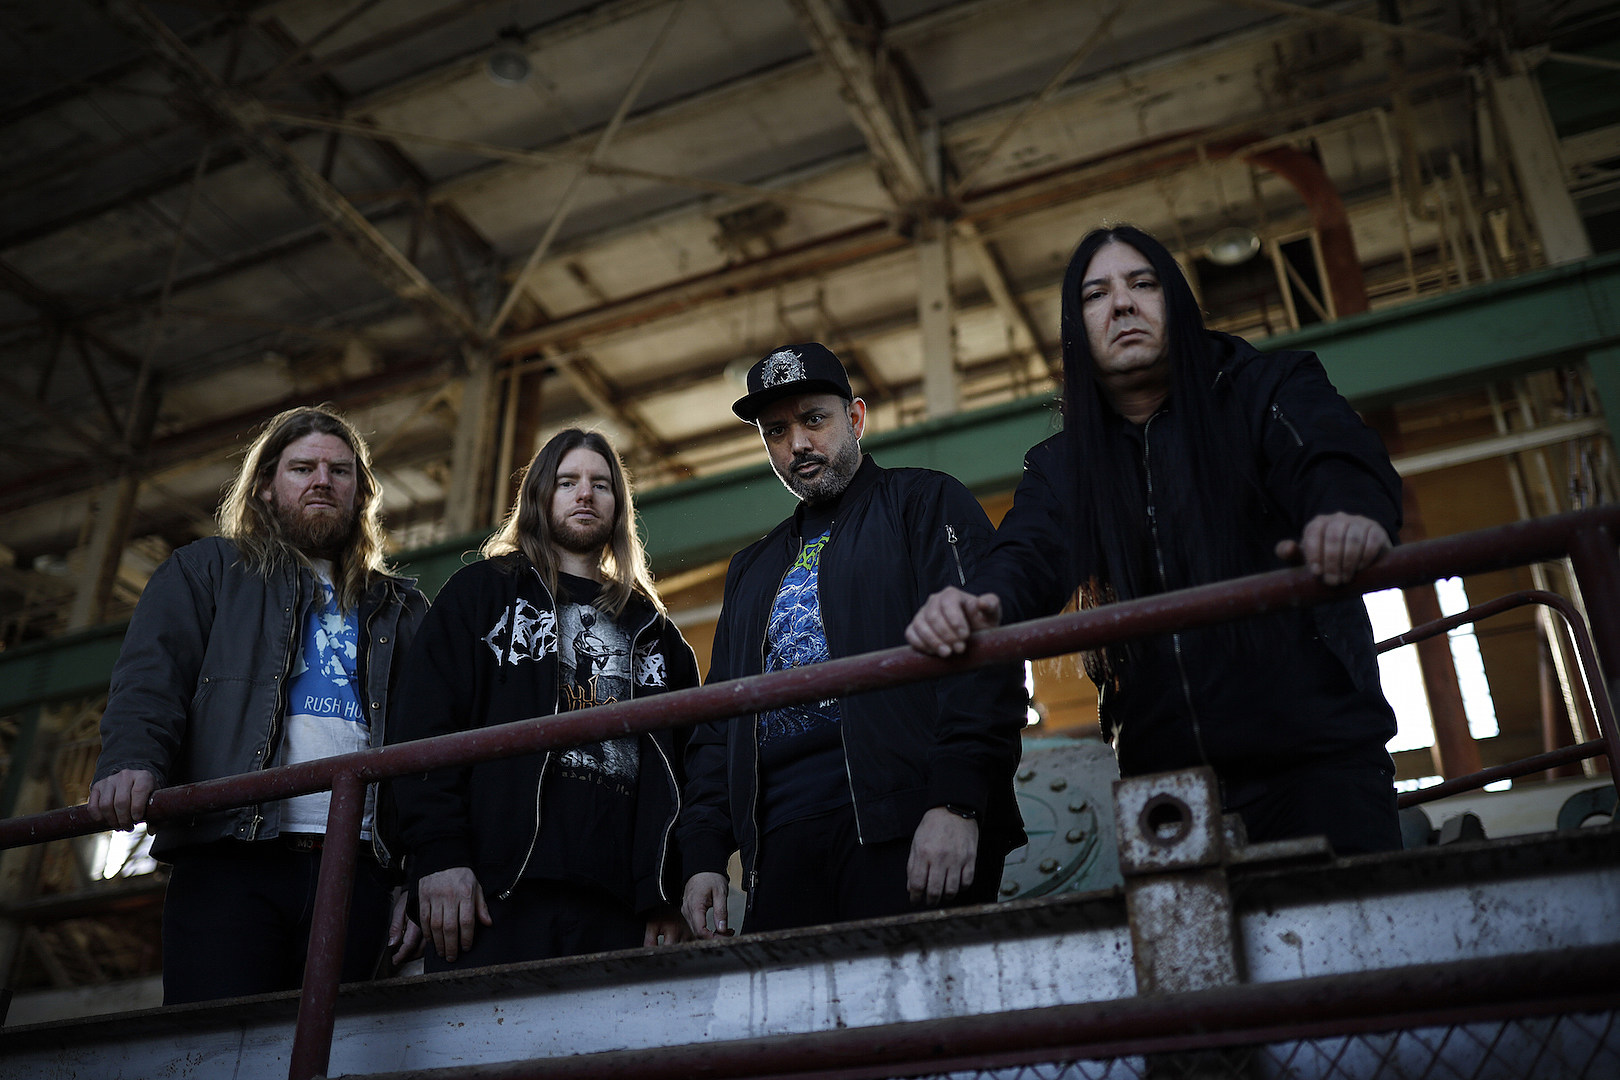 Devourment Return With 'Obscene Majesty' Album, Debut First Single